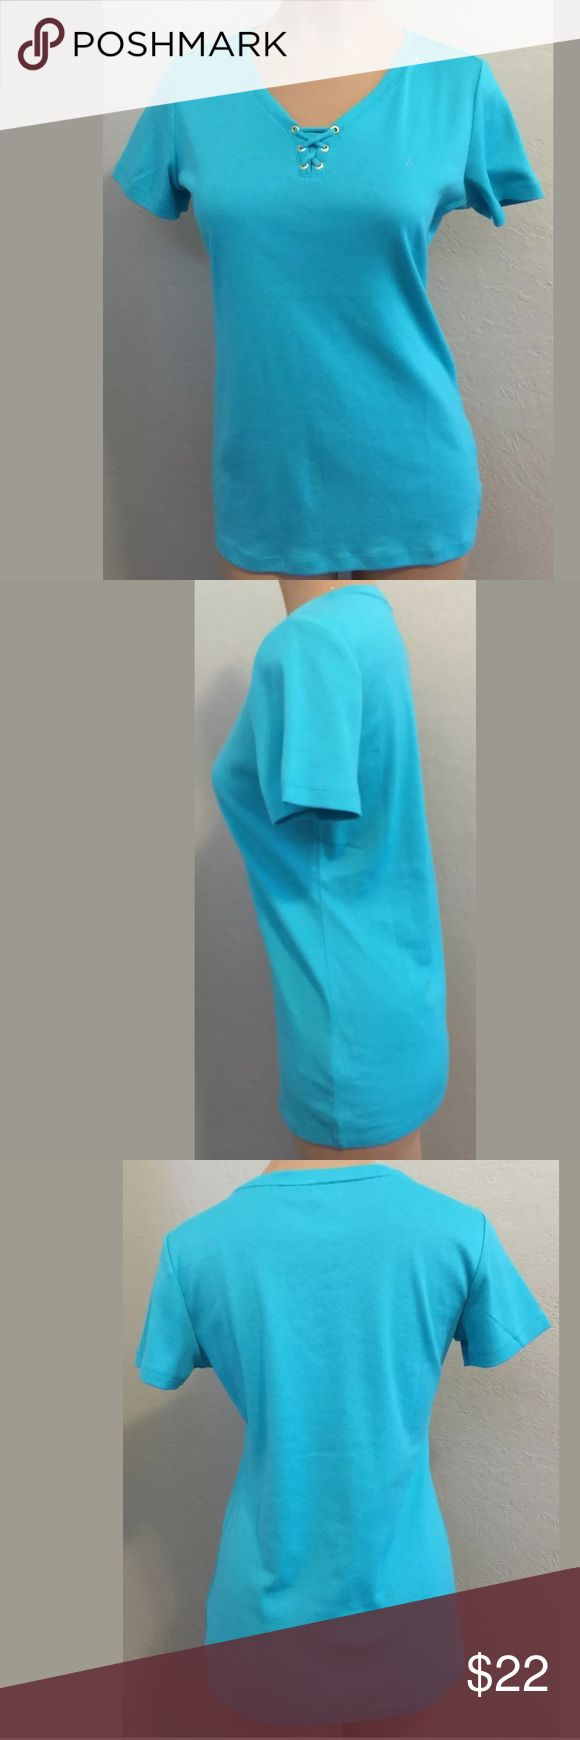 "Nautical small turquoise t-shirt top short sleeve NWT Nautica size small turquoise t-shirt top, short sleeve. 100% cotton. Bust 18"" armpit to armpit Length 25 1/4"" shoulder to hem. Measurements are approximate. Nautica Tops Tees - Short Sleeve"